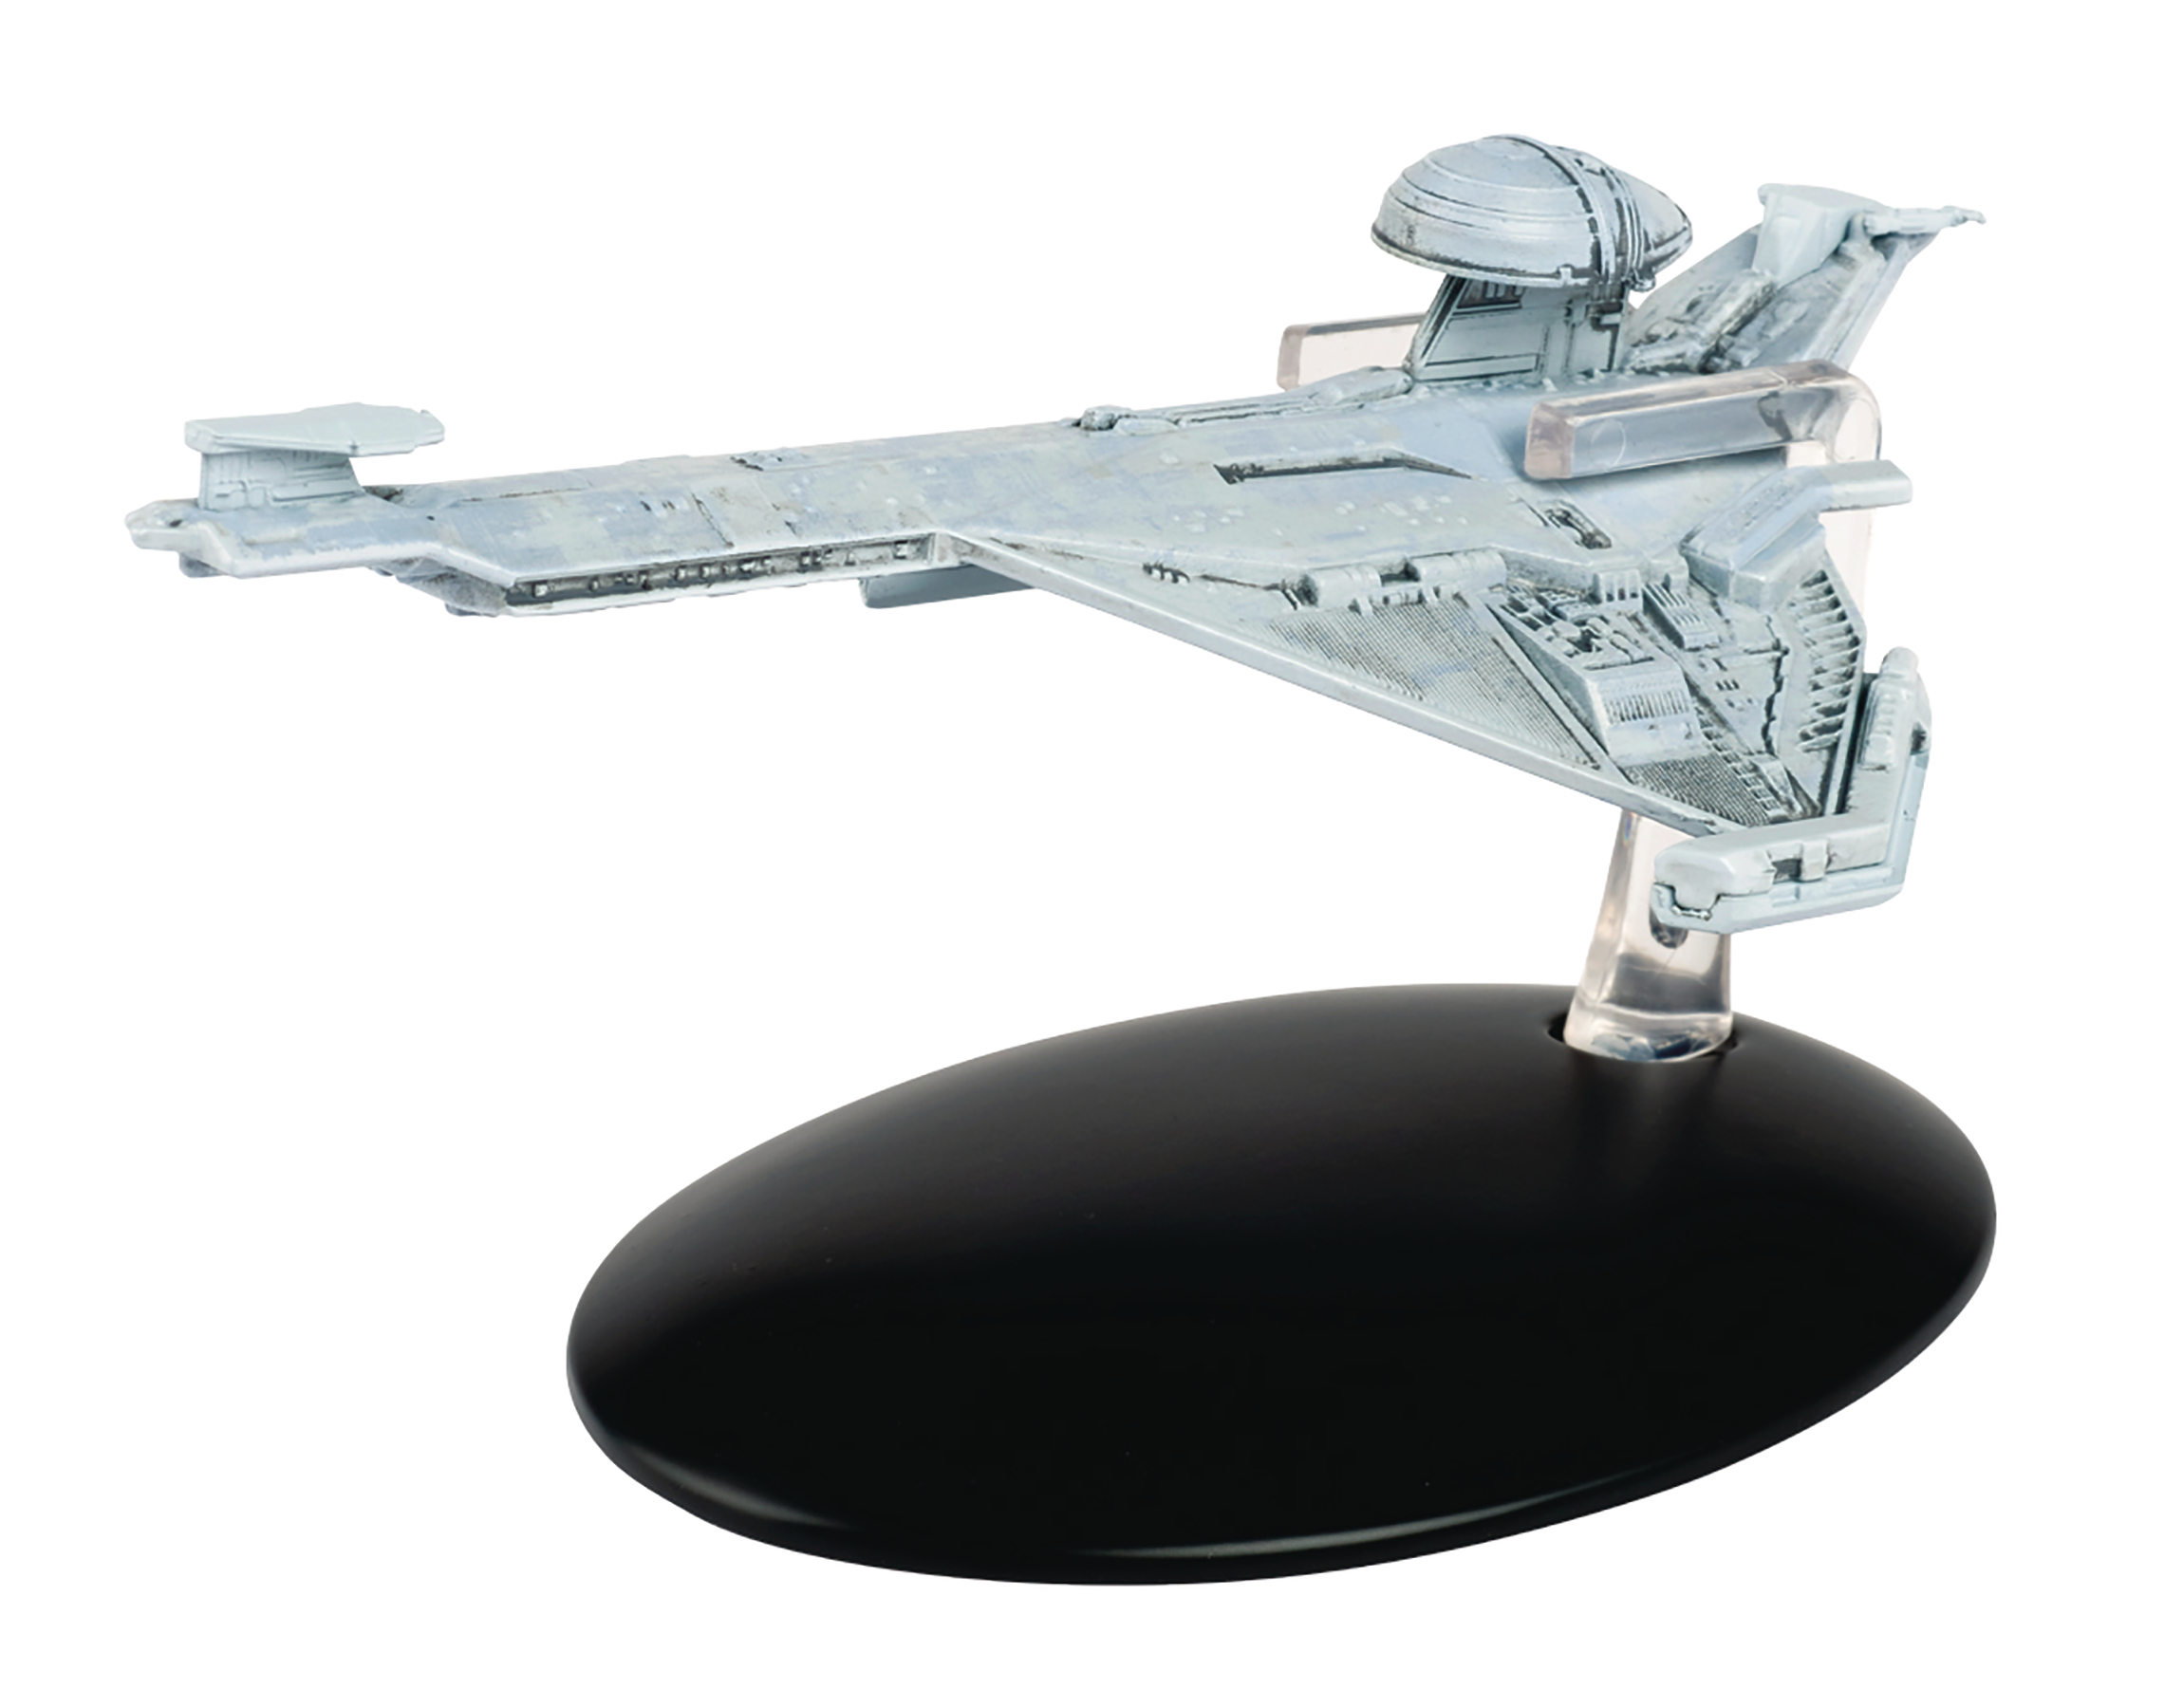 STAR TREK STARSHIPS FIG MAG #142 PROMELLIAN BATTLE CRUISER (